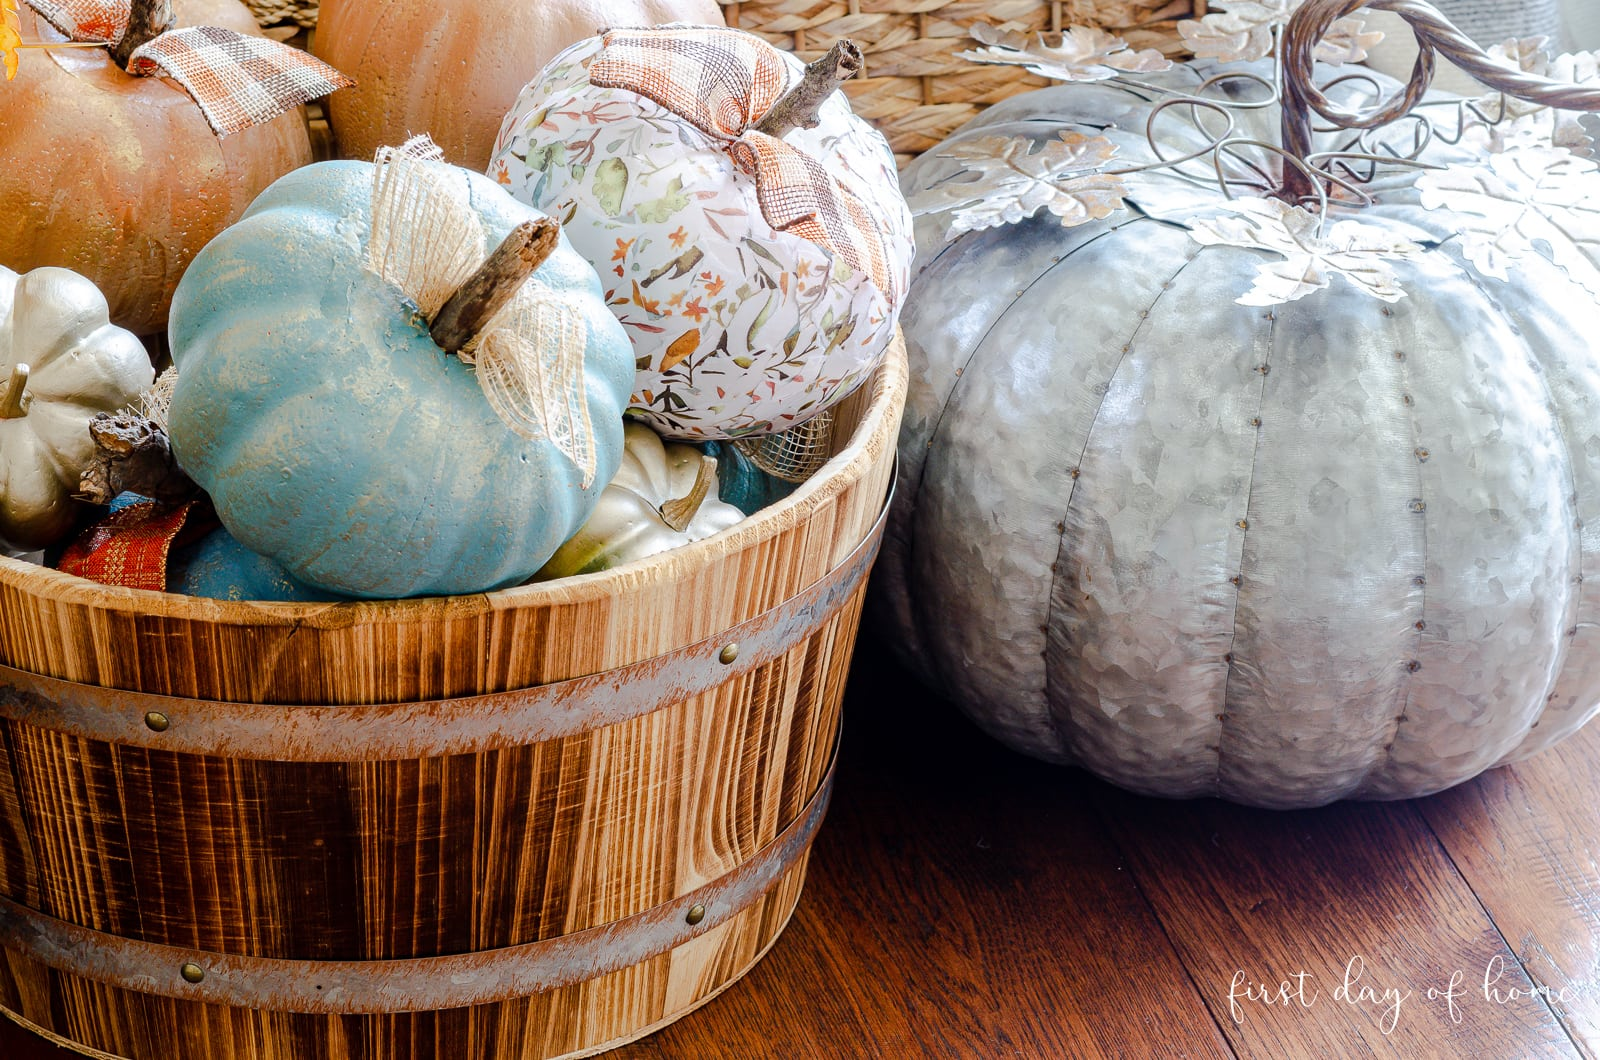 Painted pumpkin and decoupage pumpkin in barrel made from dollar store pumpkins